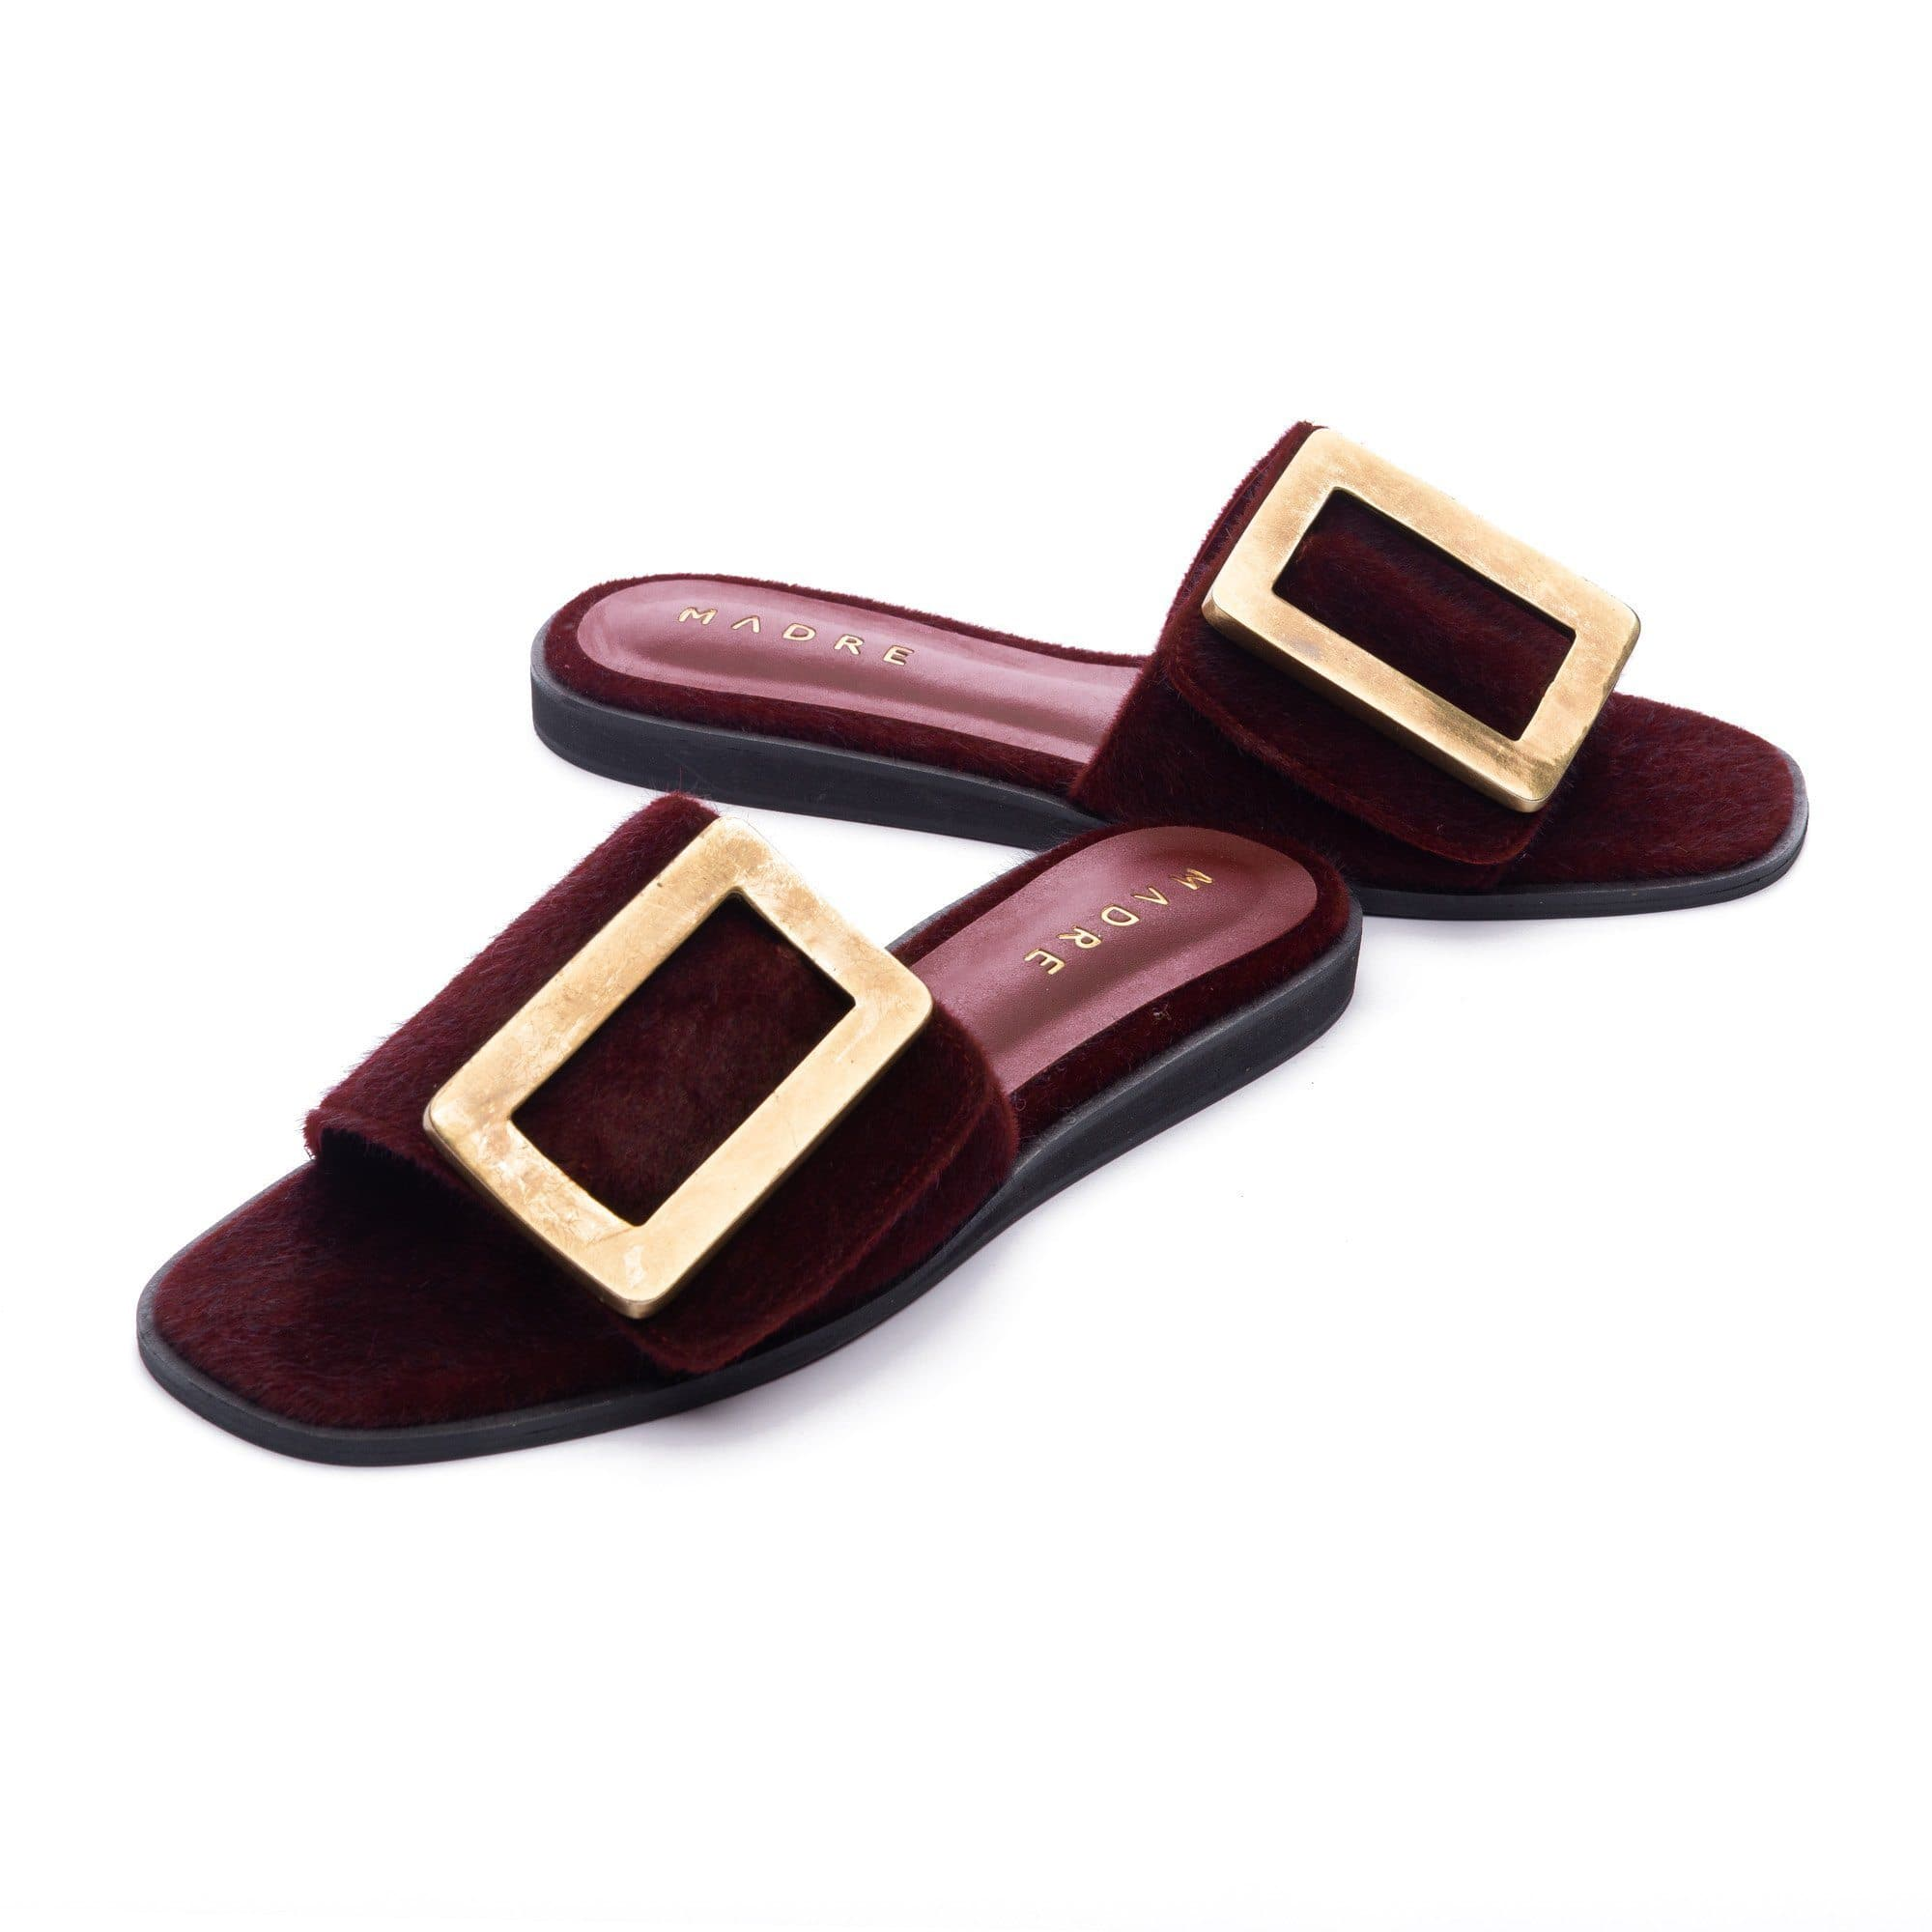 Rustica Flat Shoes Madre Collection 36 Maroon